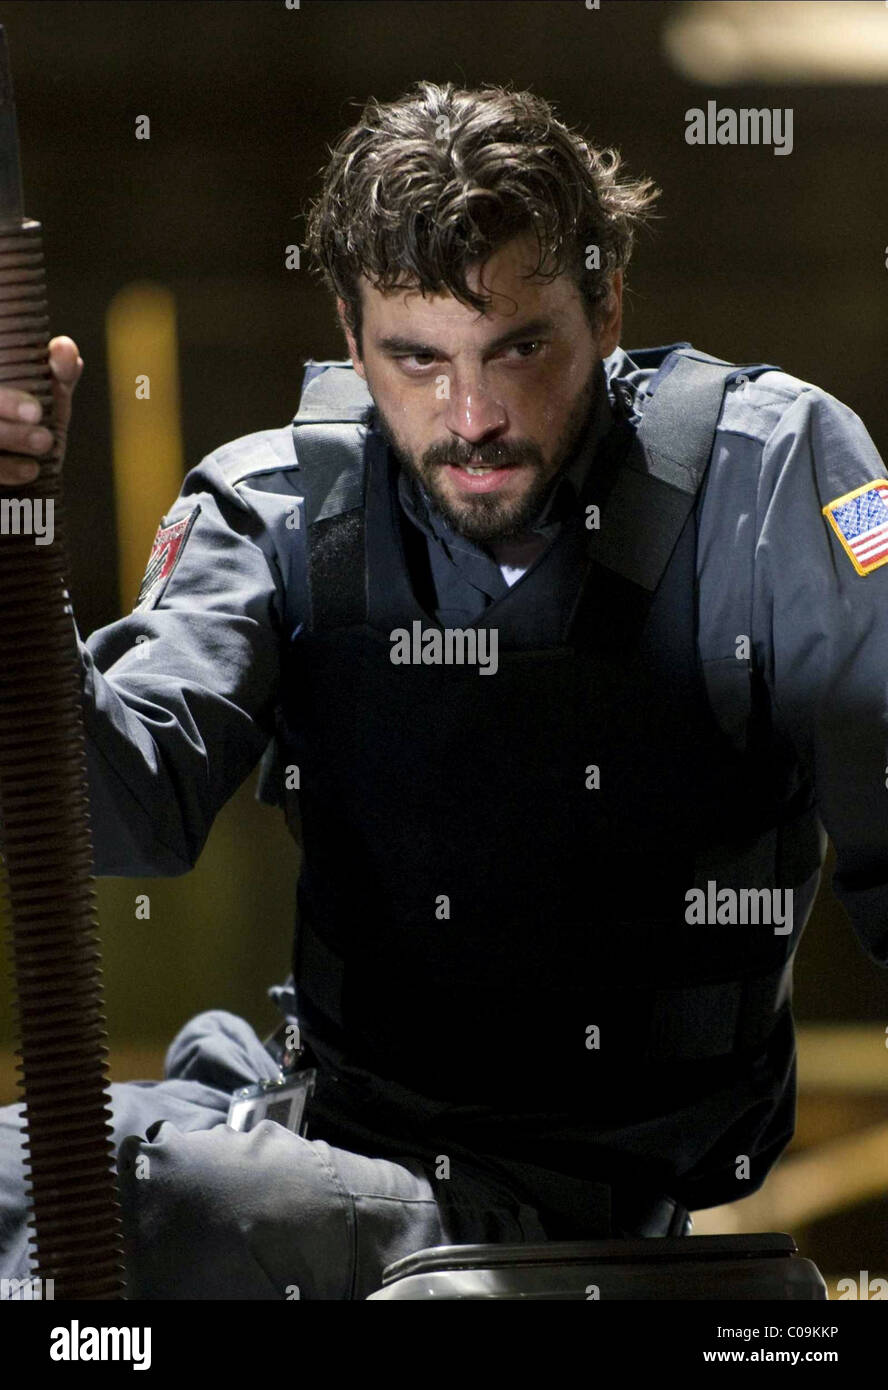 Skeet Ulrich As Dobbs Film Title Armored High Resolution Stock Photography  and Images - Alamy